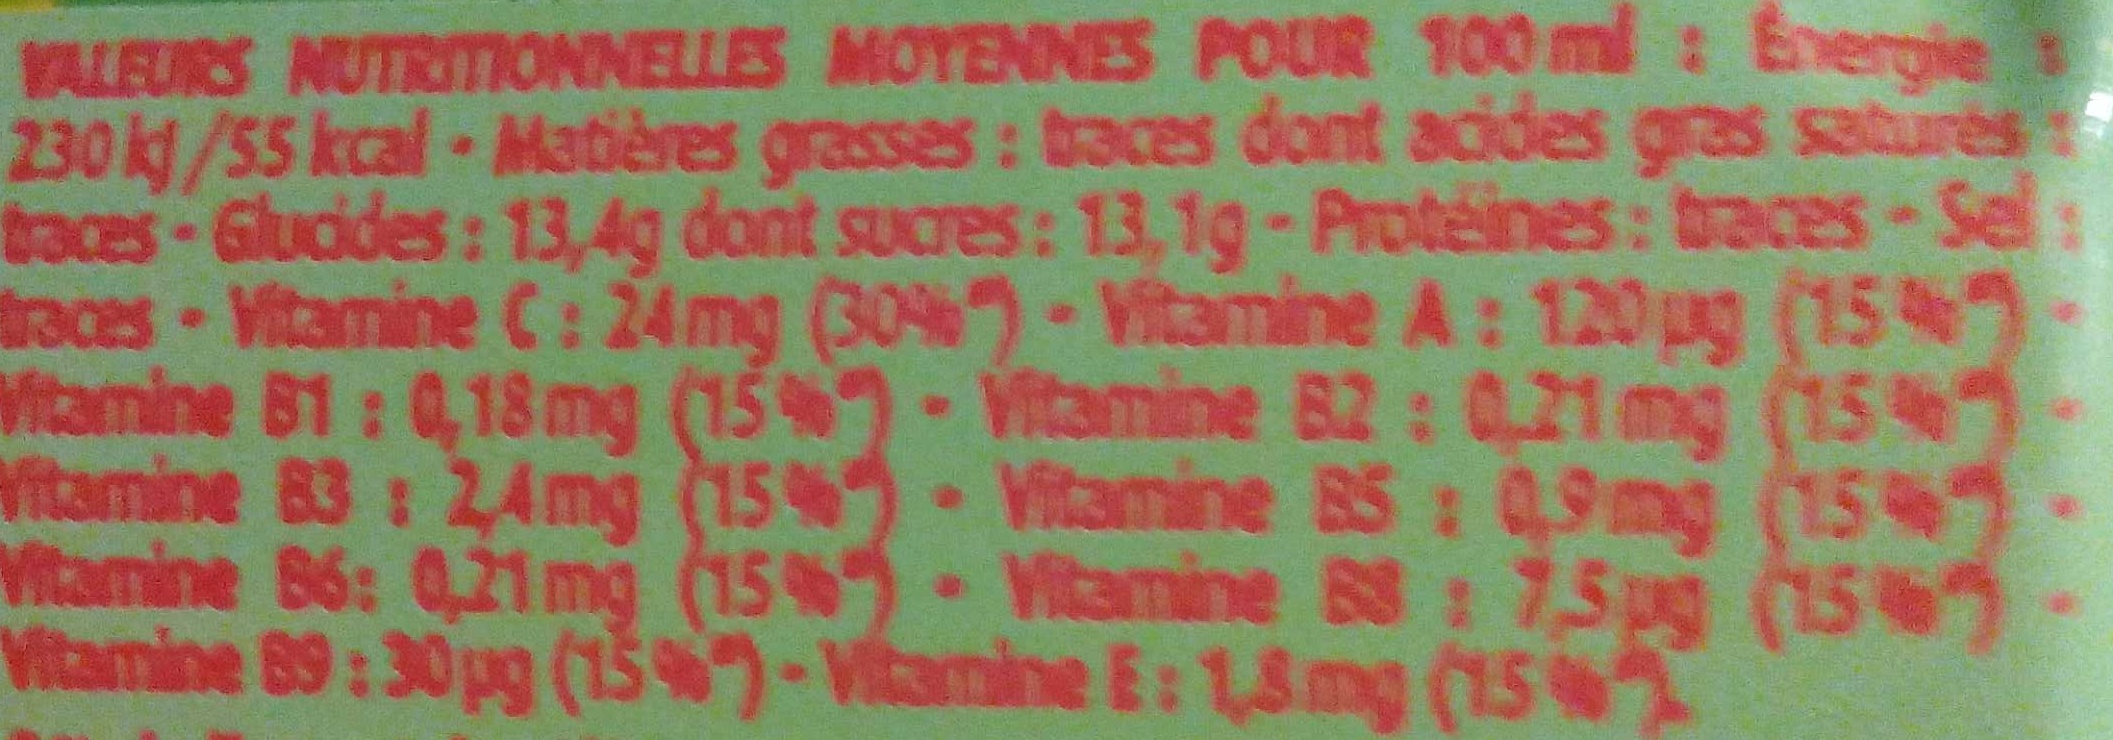 Cocktail Tropical - Nutrition facts